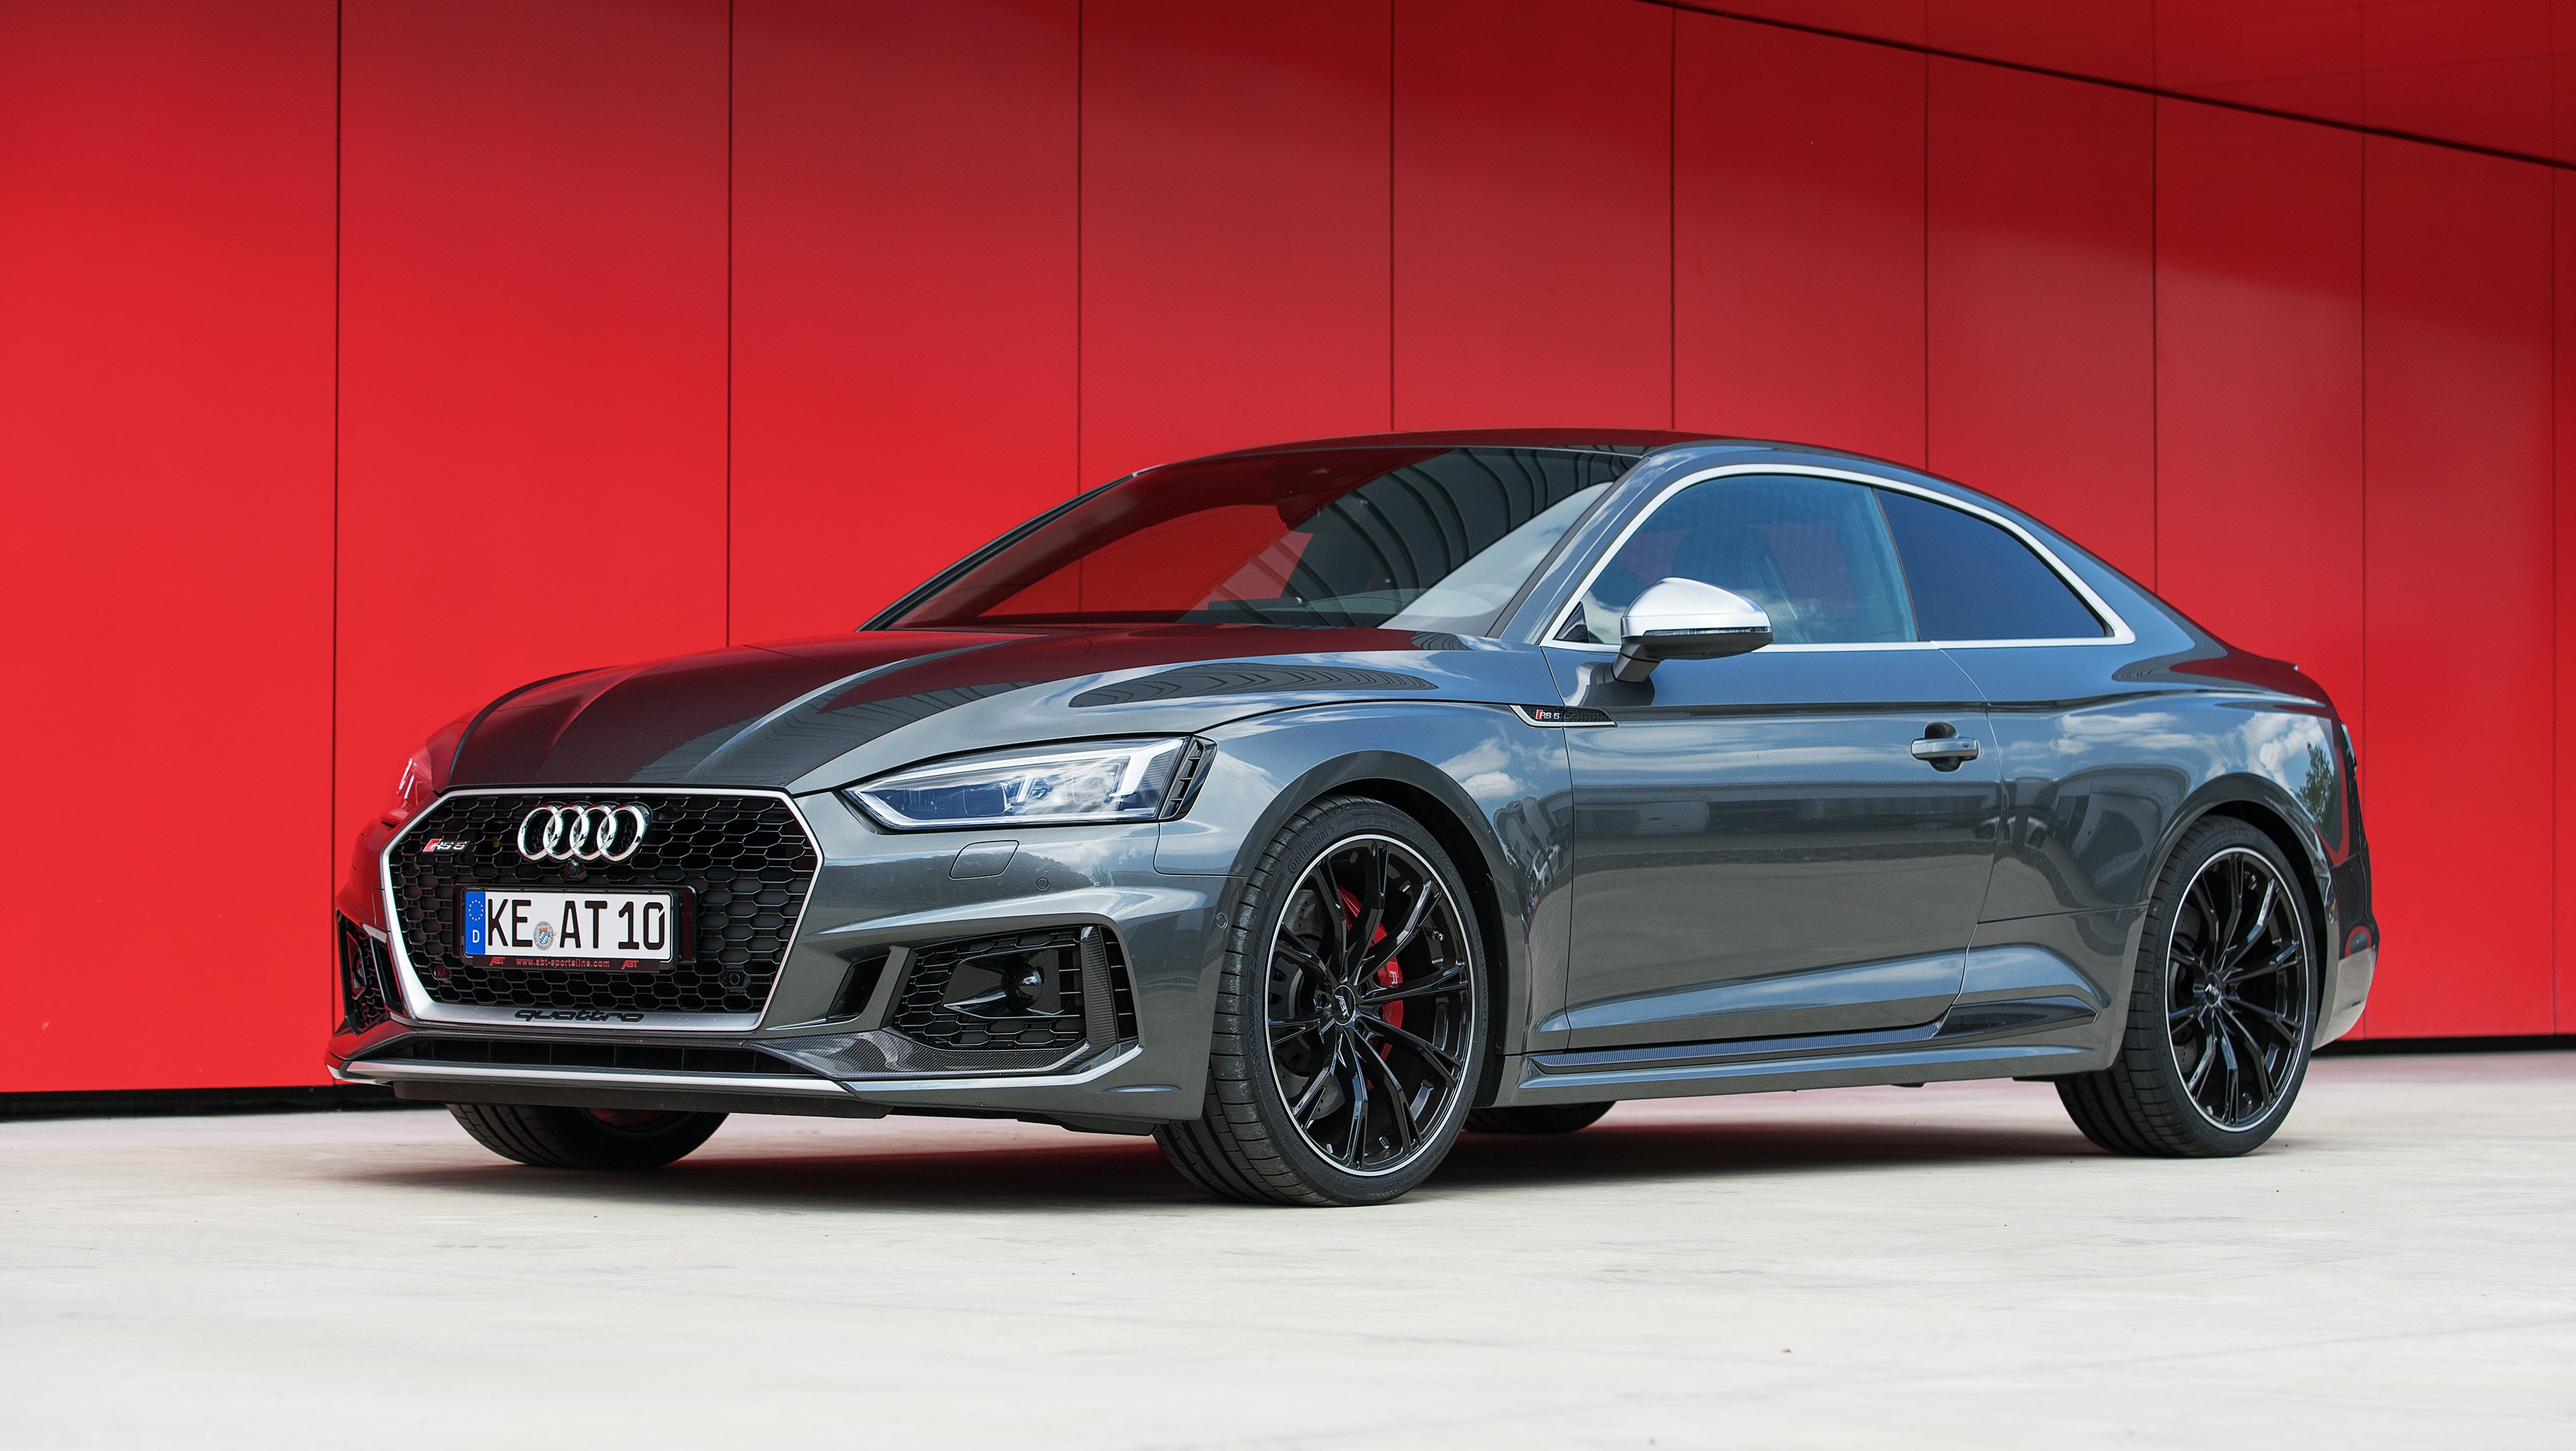 2018 Audi Rs5 By Abt Sportsline Pictures Photos Wallpapers